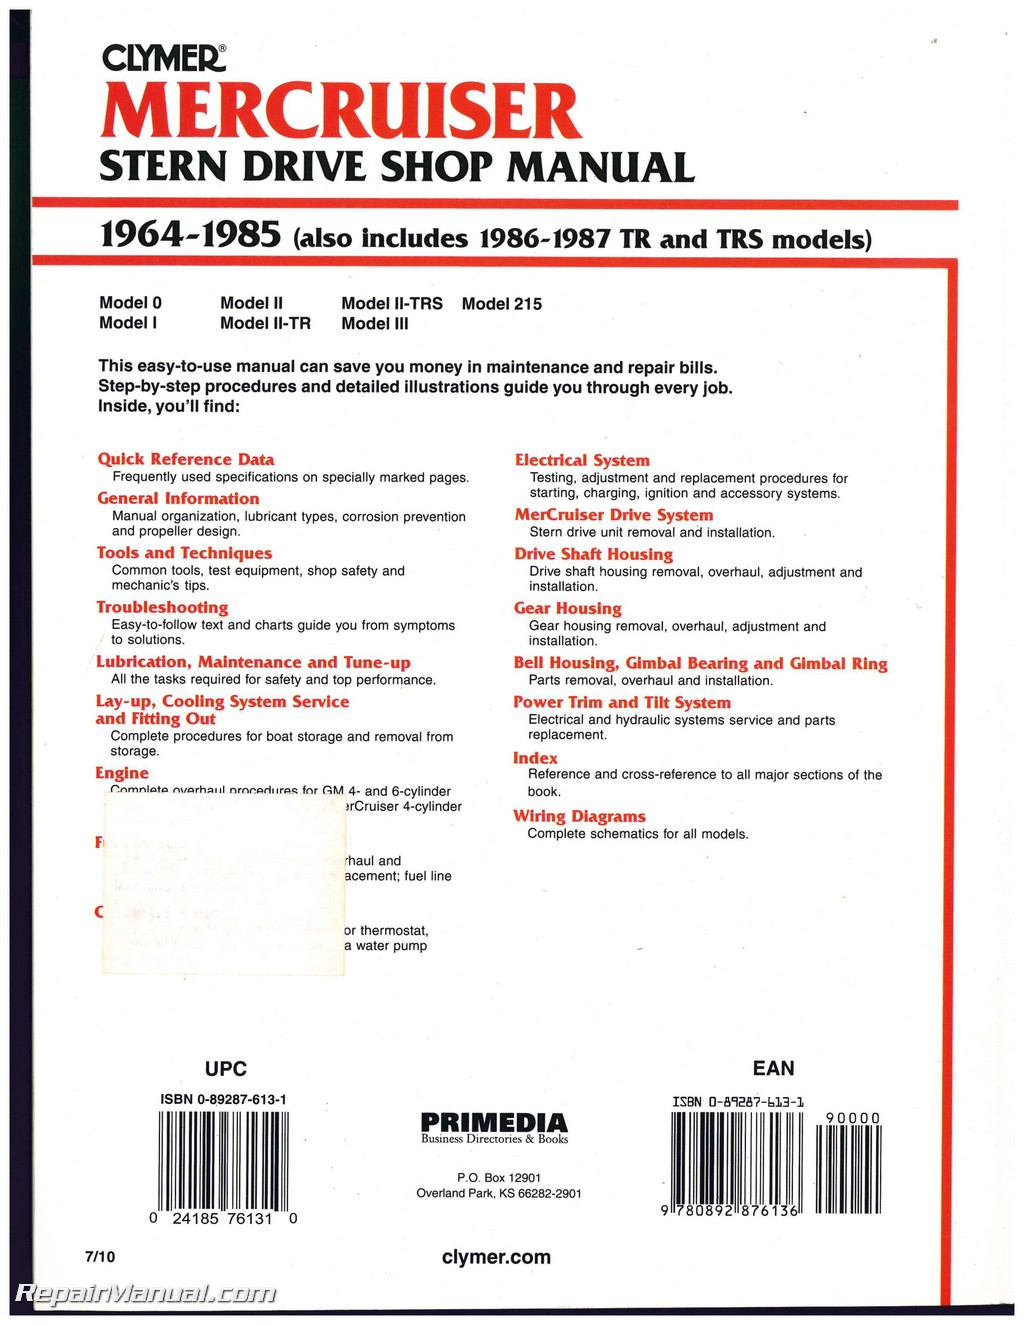 mercruiser stern drive boat engine shop manual 1964 1987 rh repairmanual com 3.0L Mercruiser Manual Mercruiser Manual 250 4.5